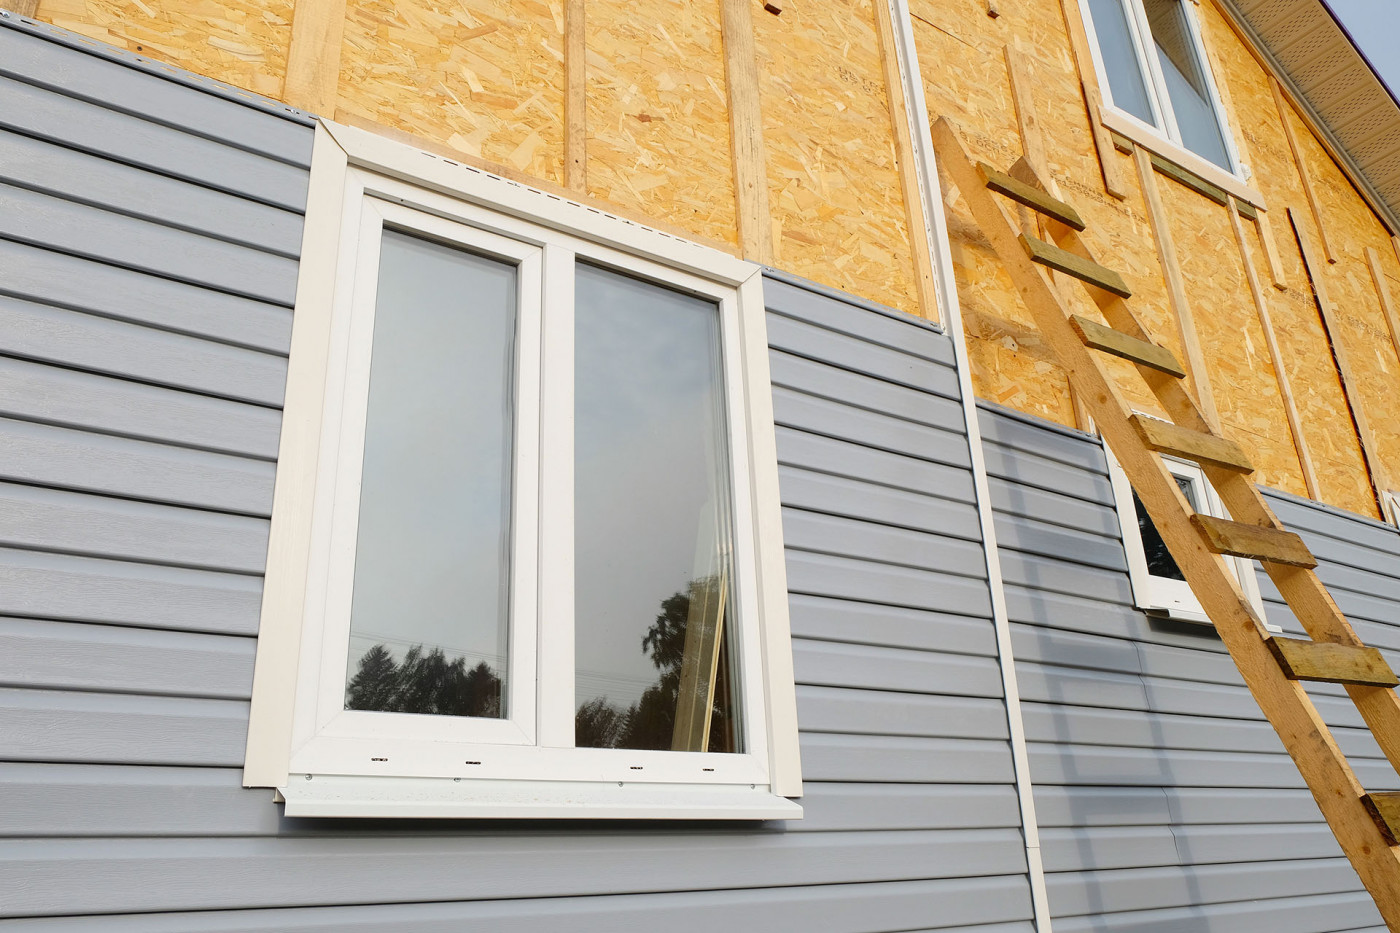 Boost Your Home's Curb Appeal With New Siding